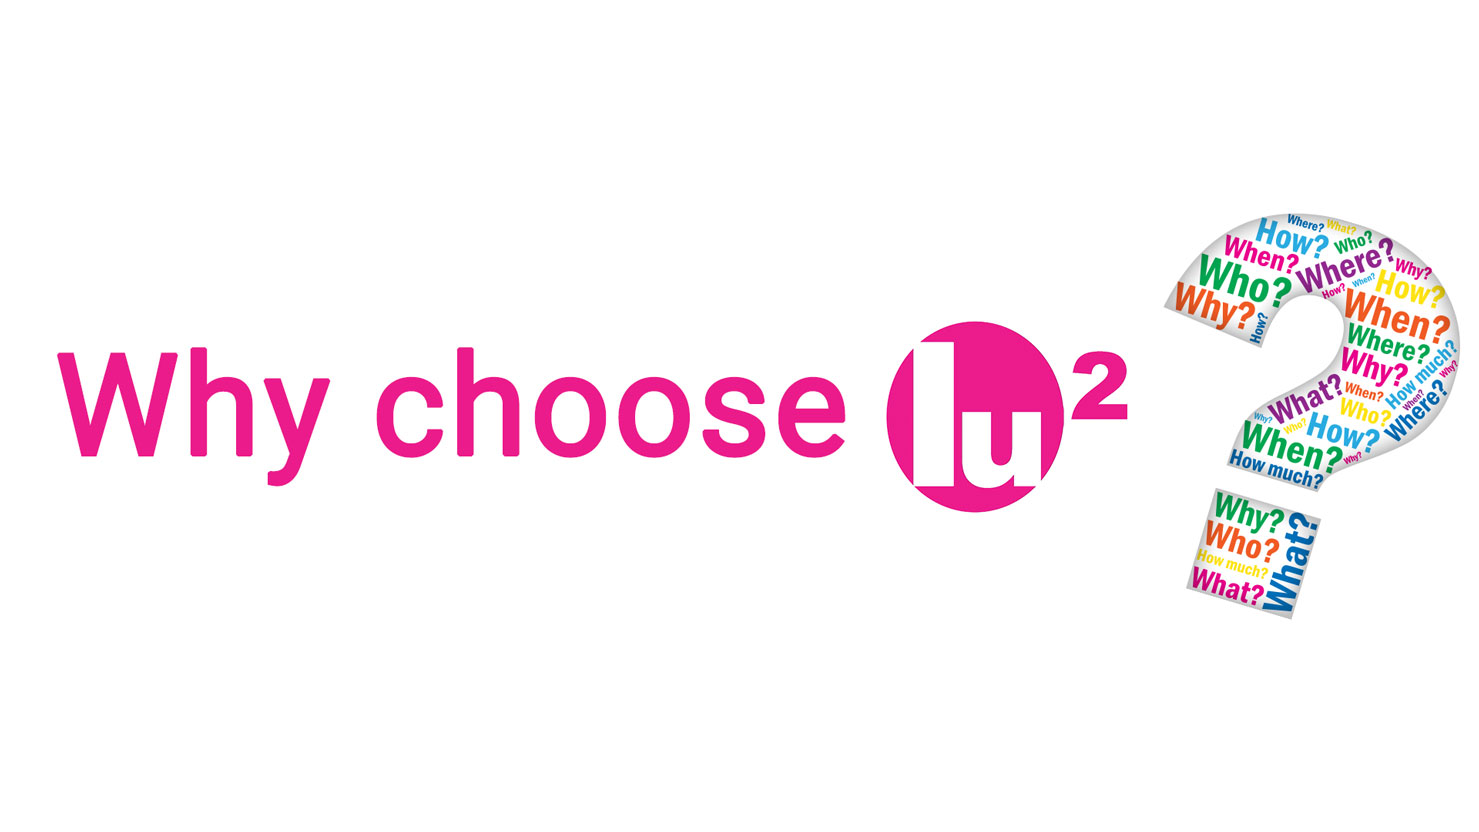 why choose lu2s